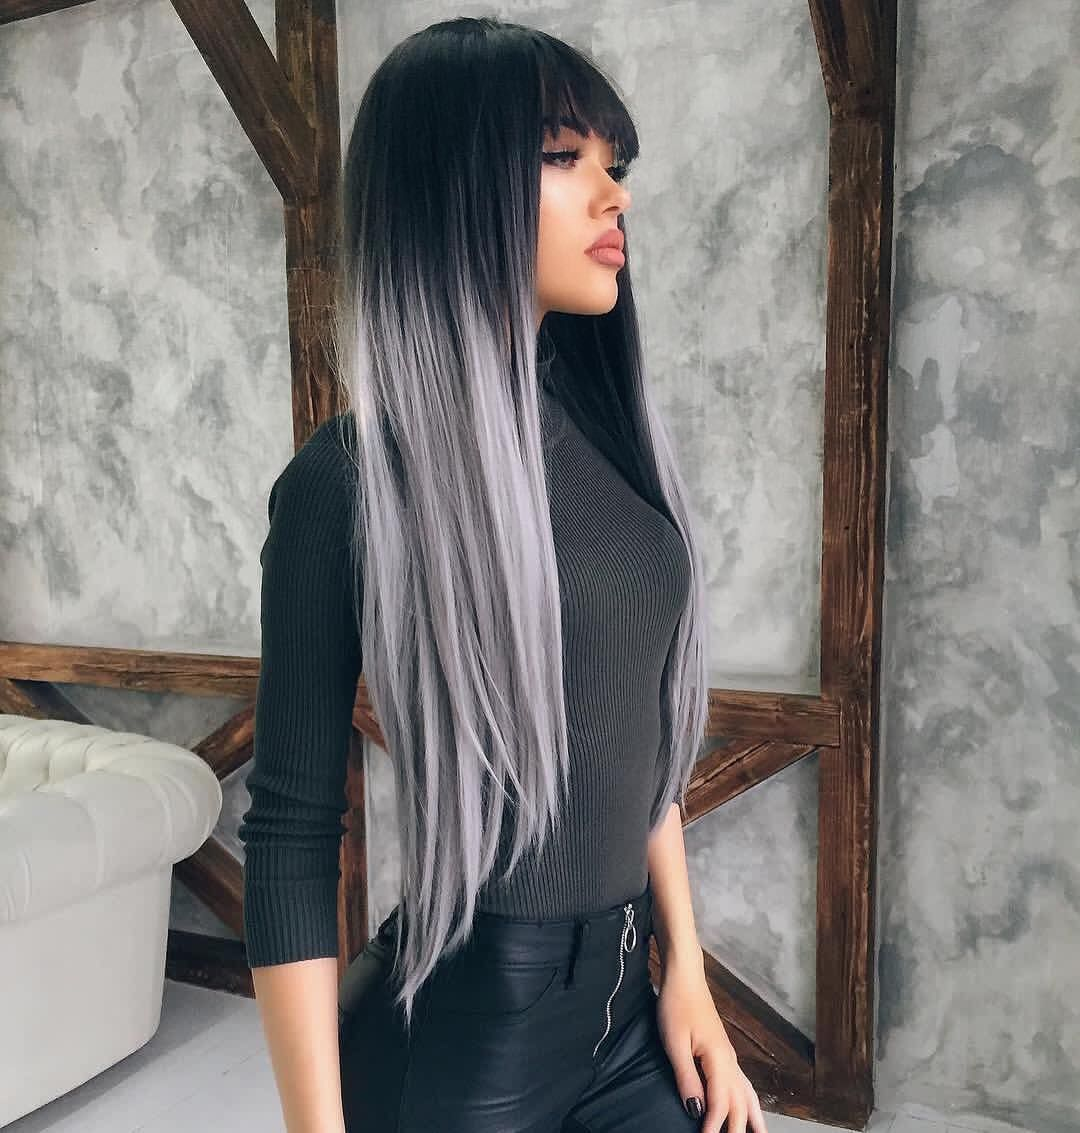 2020 New Gray Hair Wigs For African American Women Cheap Curly Wigs Natural Wigs Dark To Grey Hair Highlights To Cover Gray Wig Adhesive